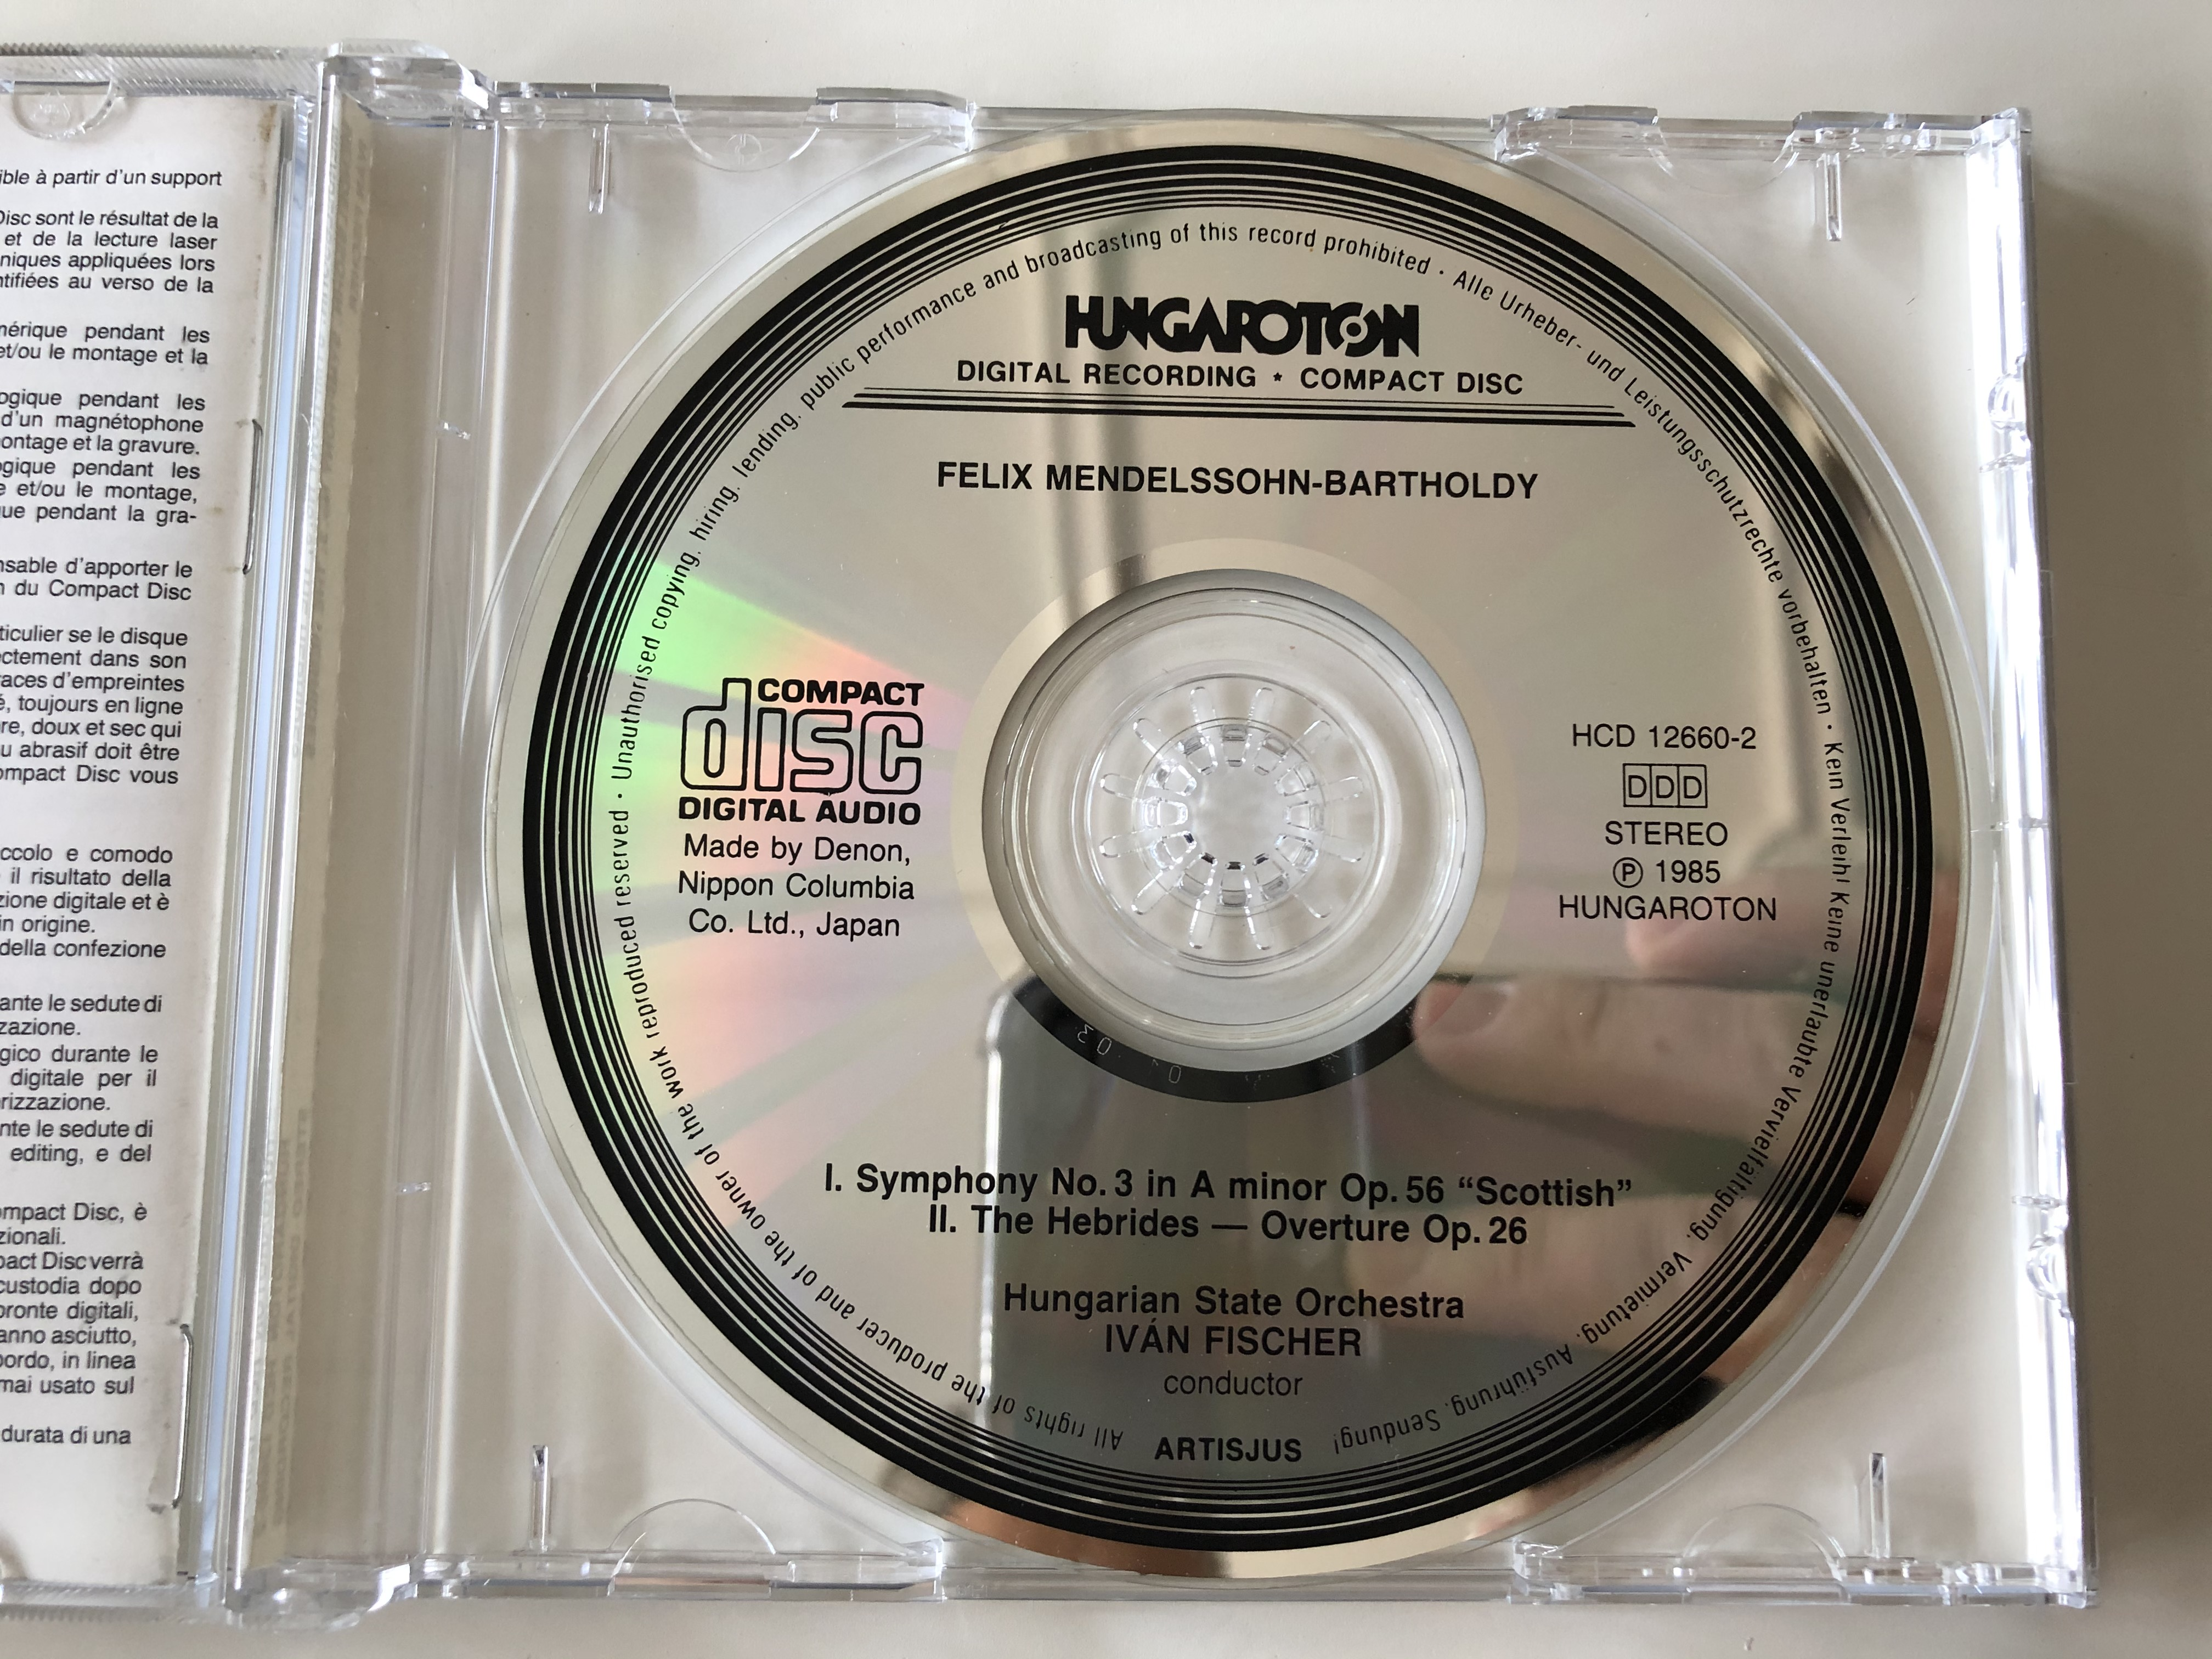 mendelssohn-symphony-no.-3-in-a-minor-scottish-the-hebrides-overture-hungarian-state-orchestra-iv-n-fischer-hungaroton-audio-cd-1985-stereo-hcd-12660-2-6-.jpg